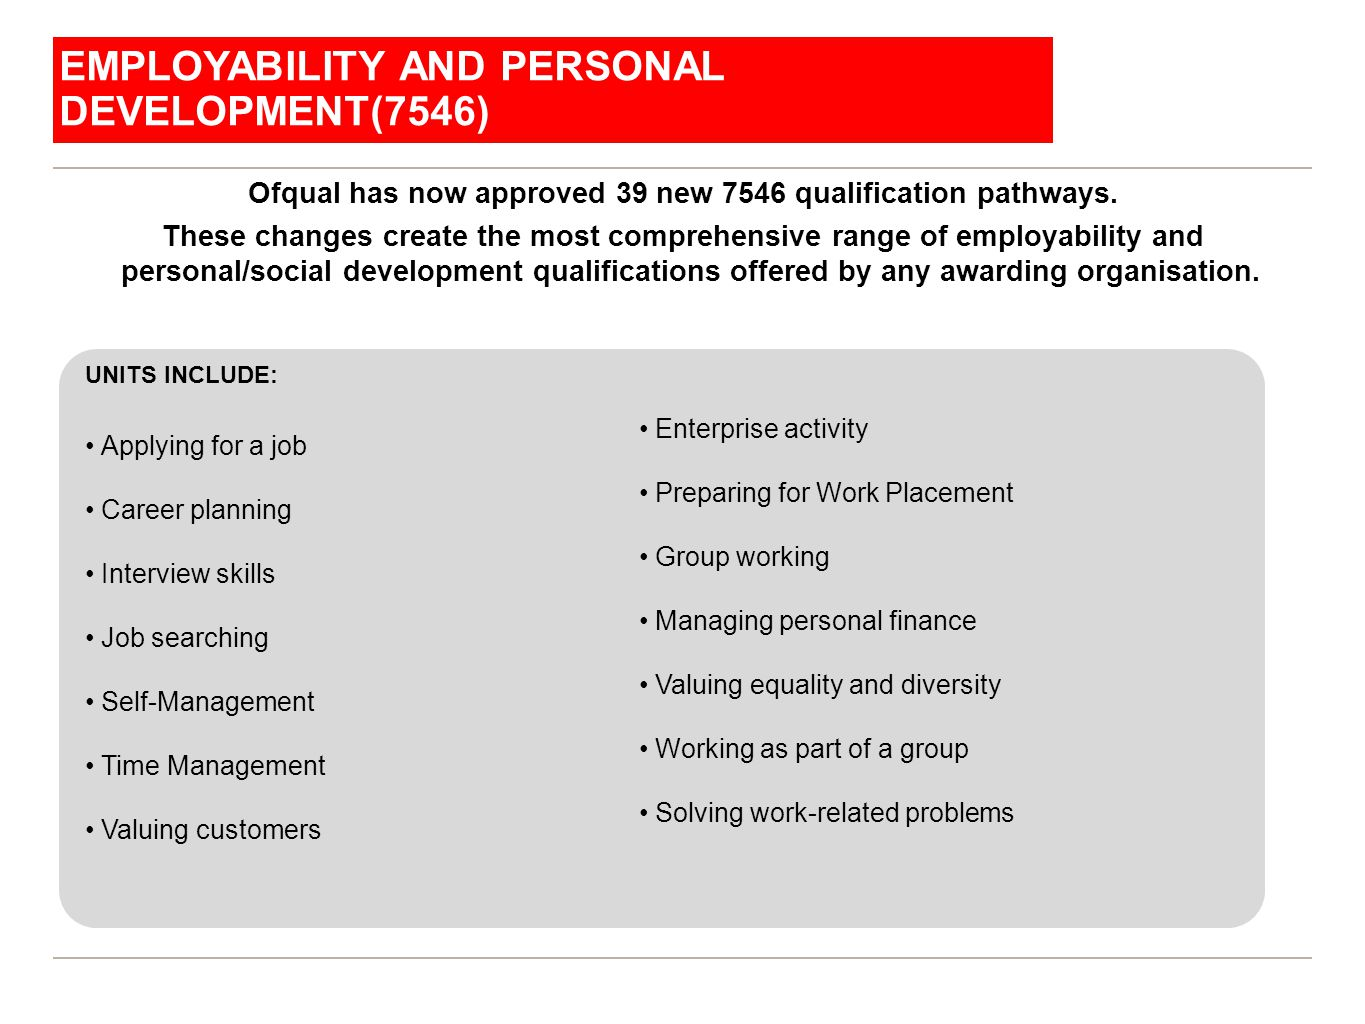 City & Guilds Functional Skills Ofqual has now approved 39 new 7546 qualification pathways. These changes create the most comprehensive range of emplo